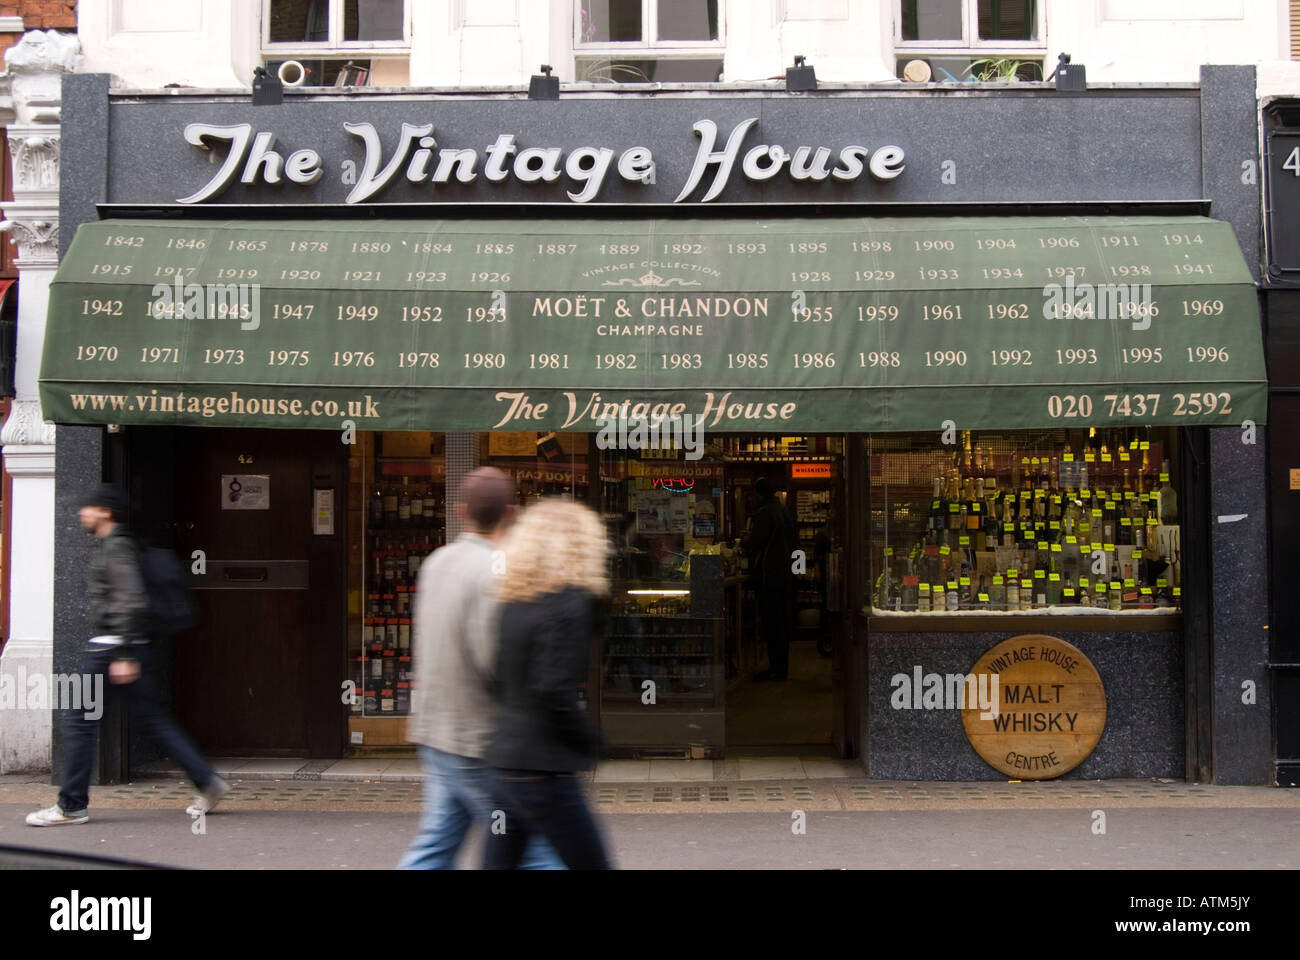 The Vintage House In Old Compton Street In Soho London England Uk Stock Photo Alamy